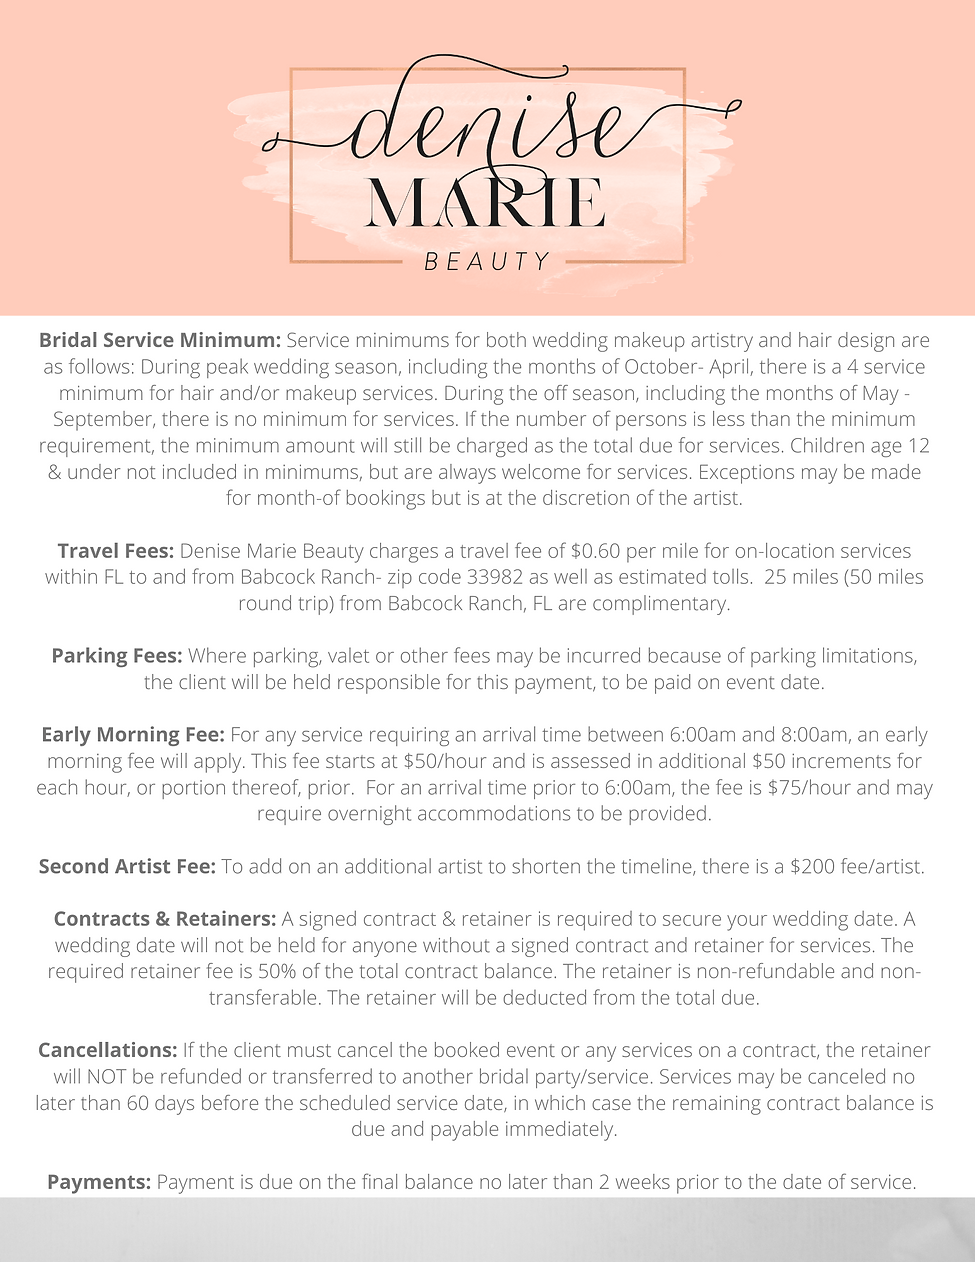 Denise Marie Beauty Details & Fees 2021.